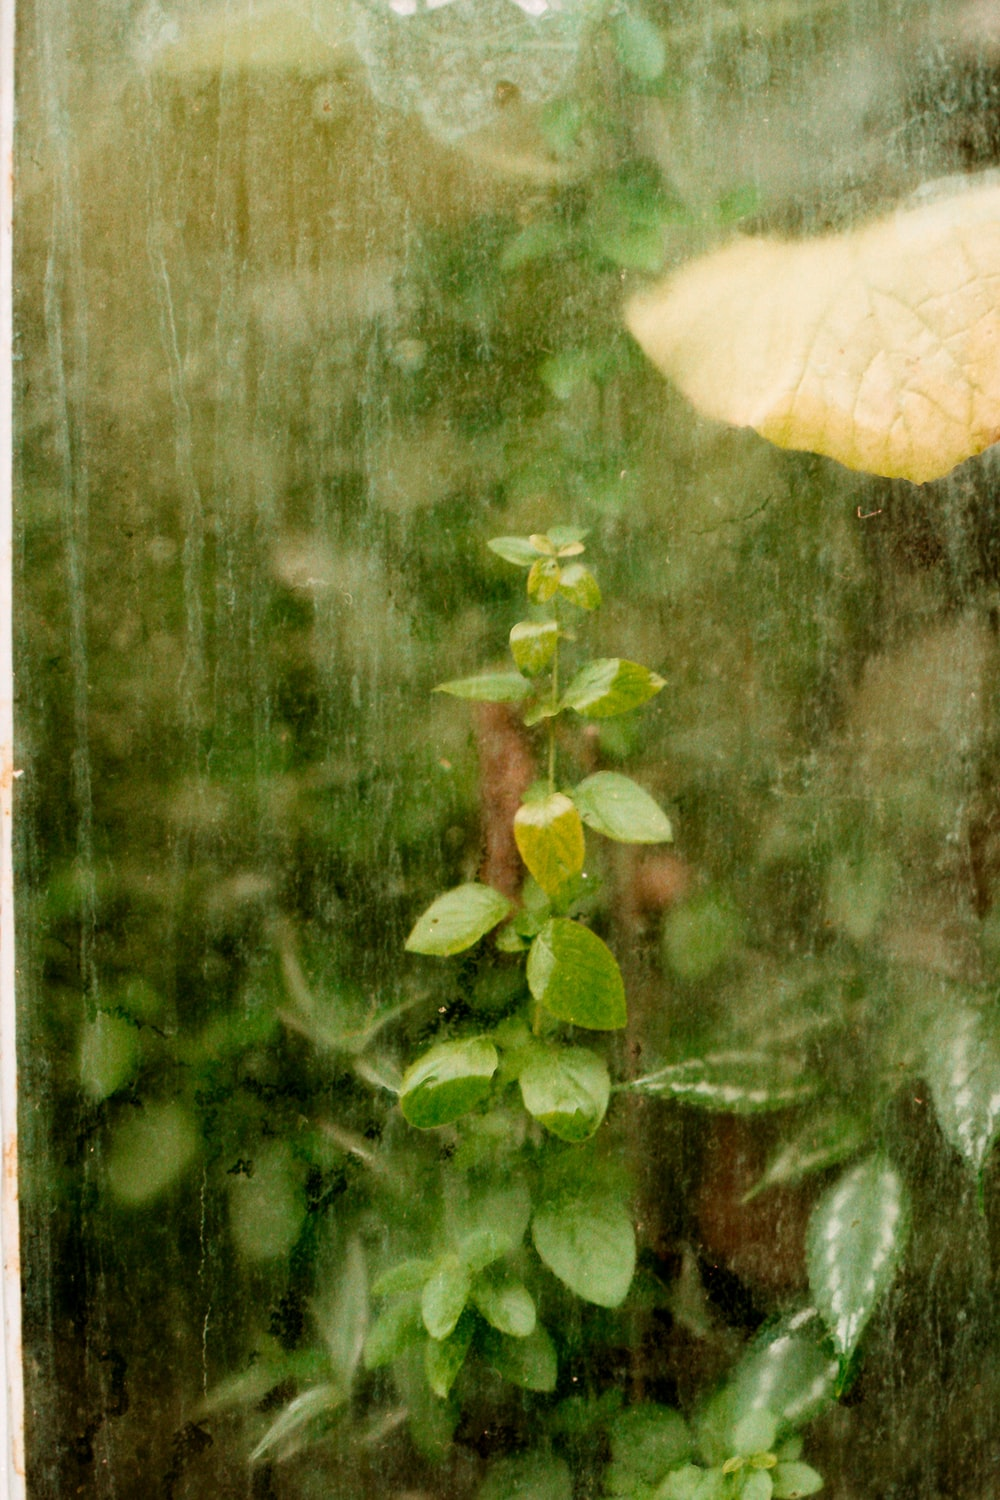 green-leafed plant near clear glass window with water droplets